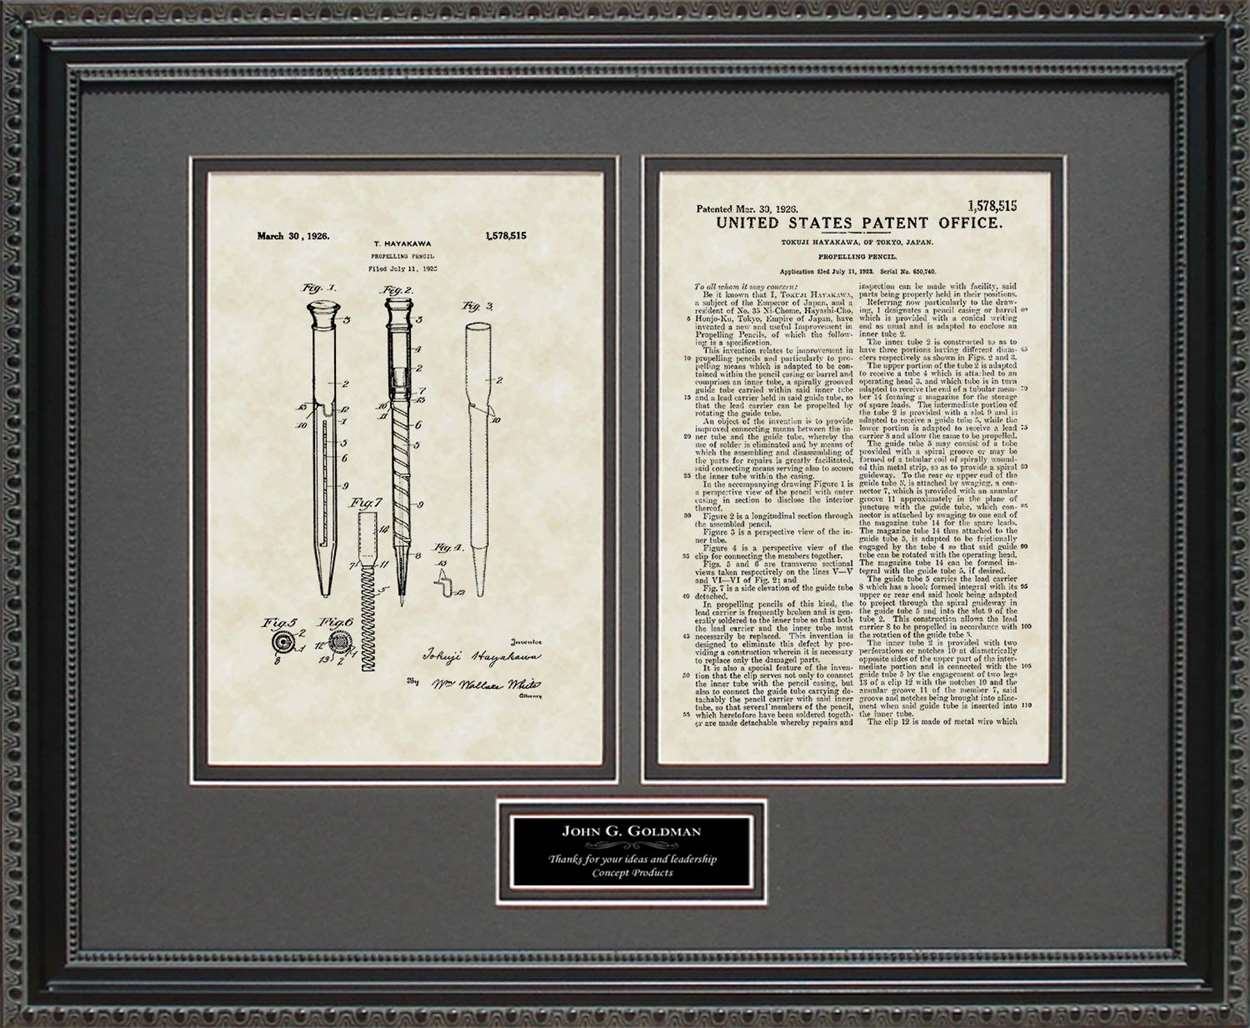 Personalized Mechanical Pencil Patent, Art & Copy, Hayakawa, 1926